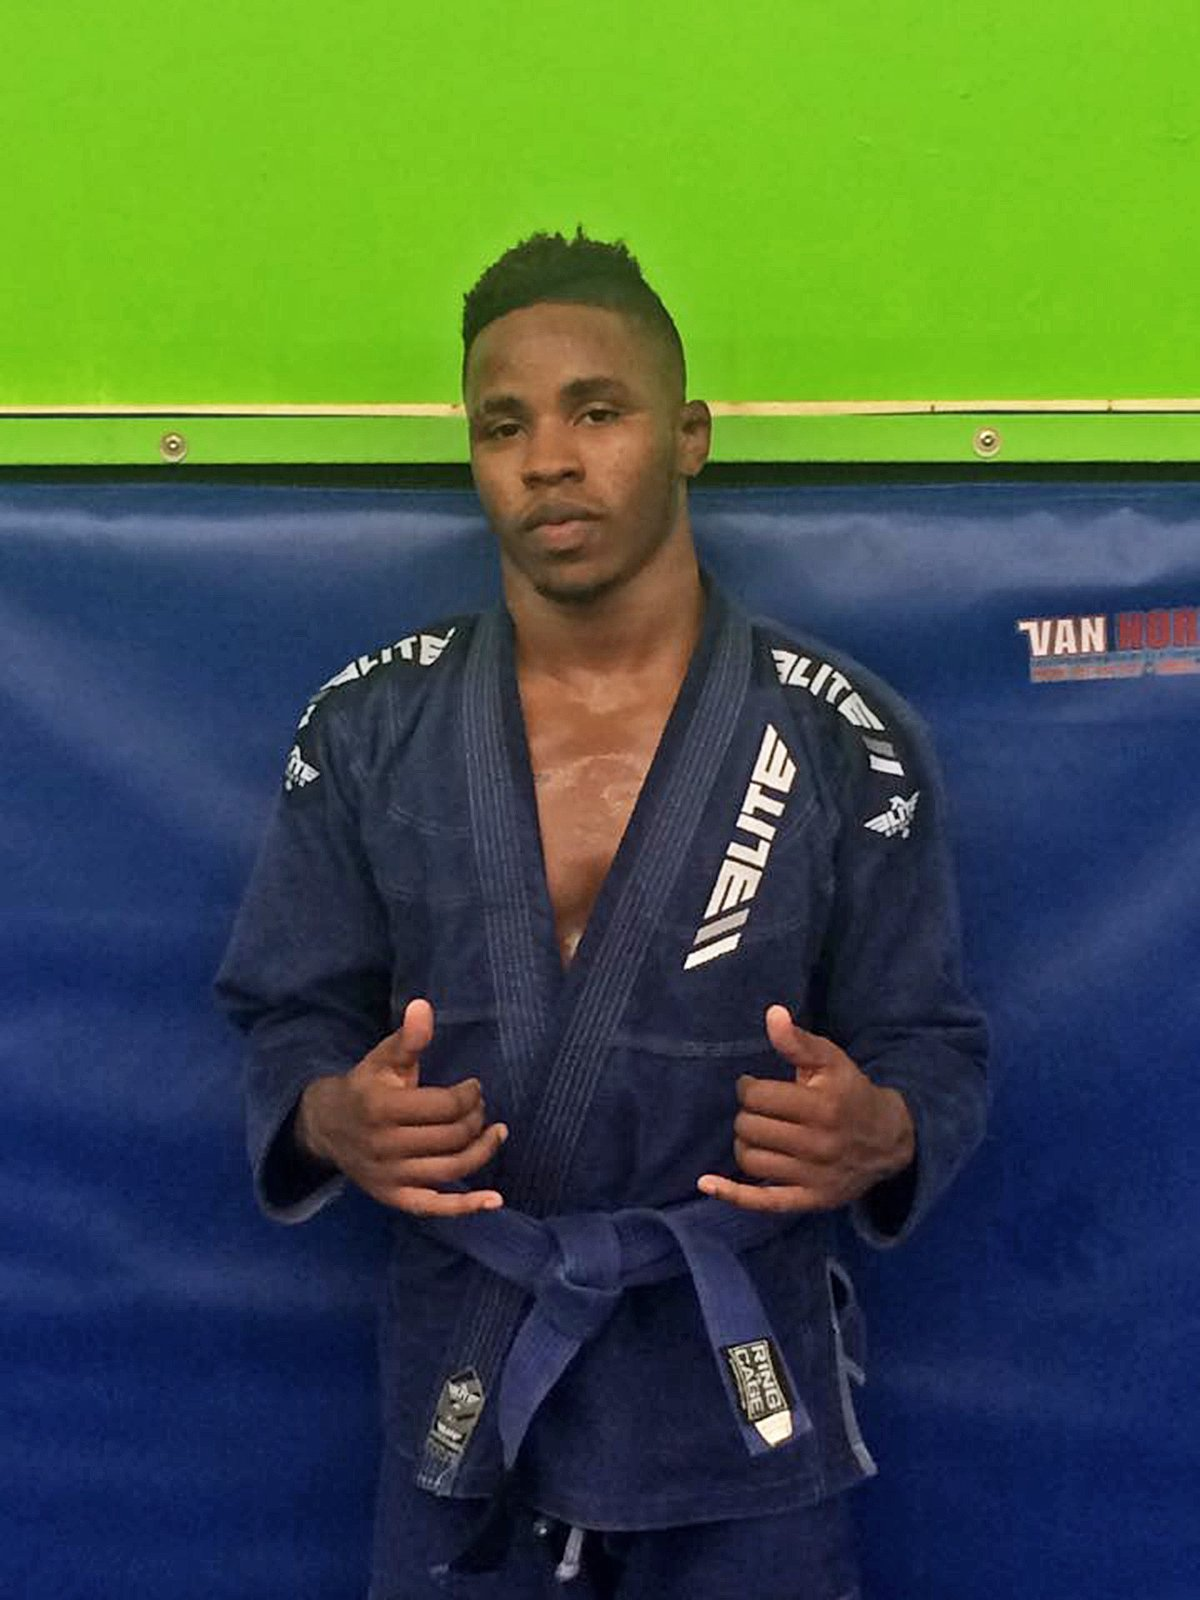 Elite Sports Team Elite Bjj Fighter Maltese Rico Tally  Image3